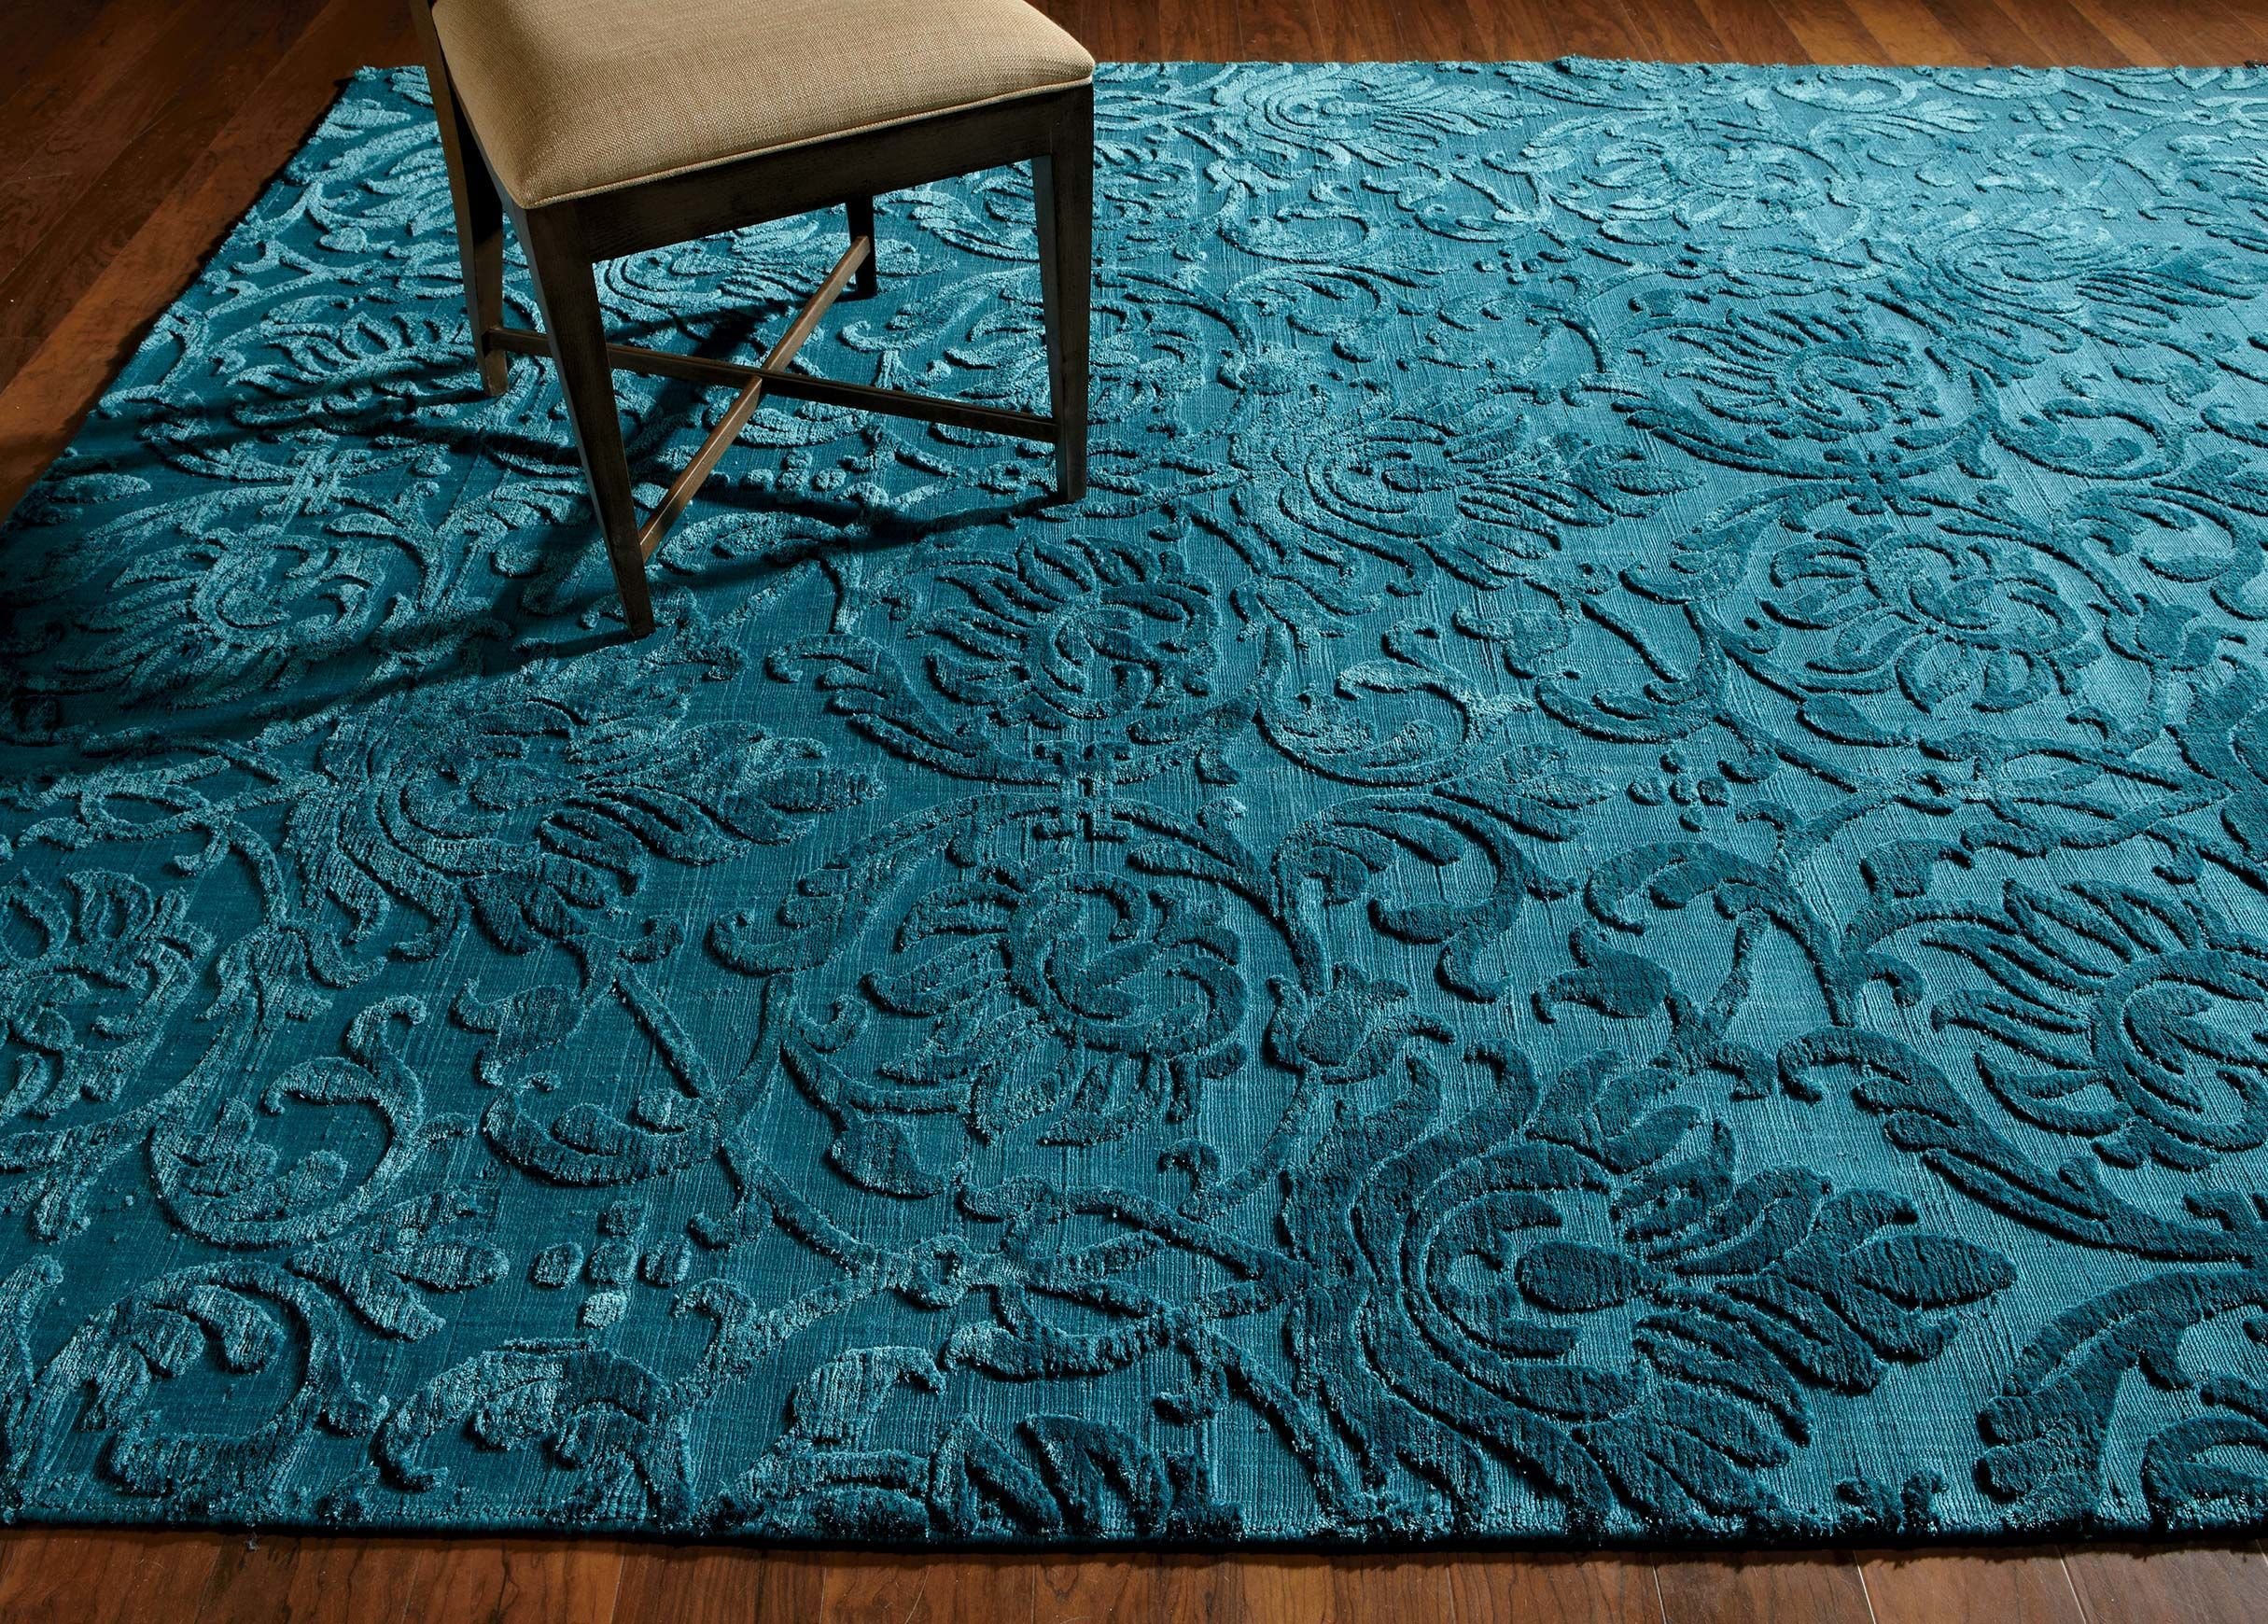 Ethan Allen Jacquard Damask Rug In Turquoise. Made By Hand In India From  100%